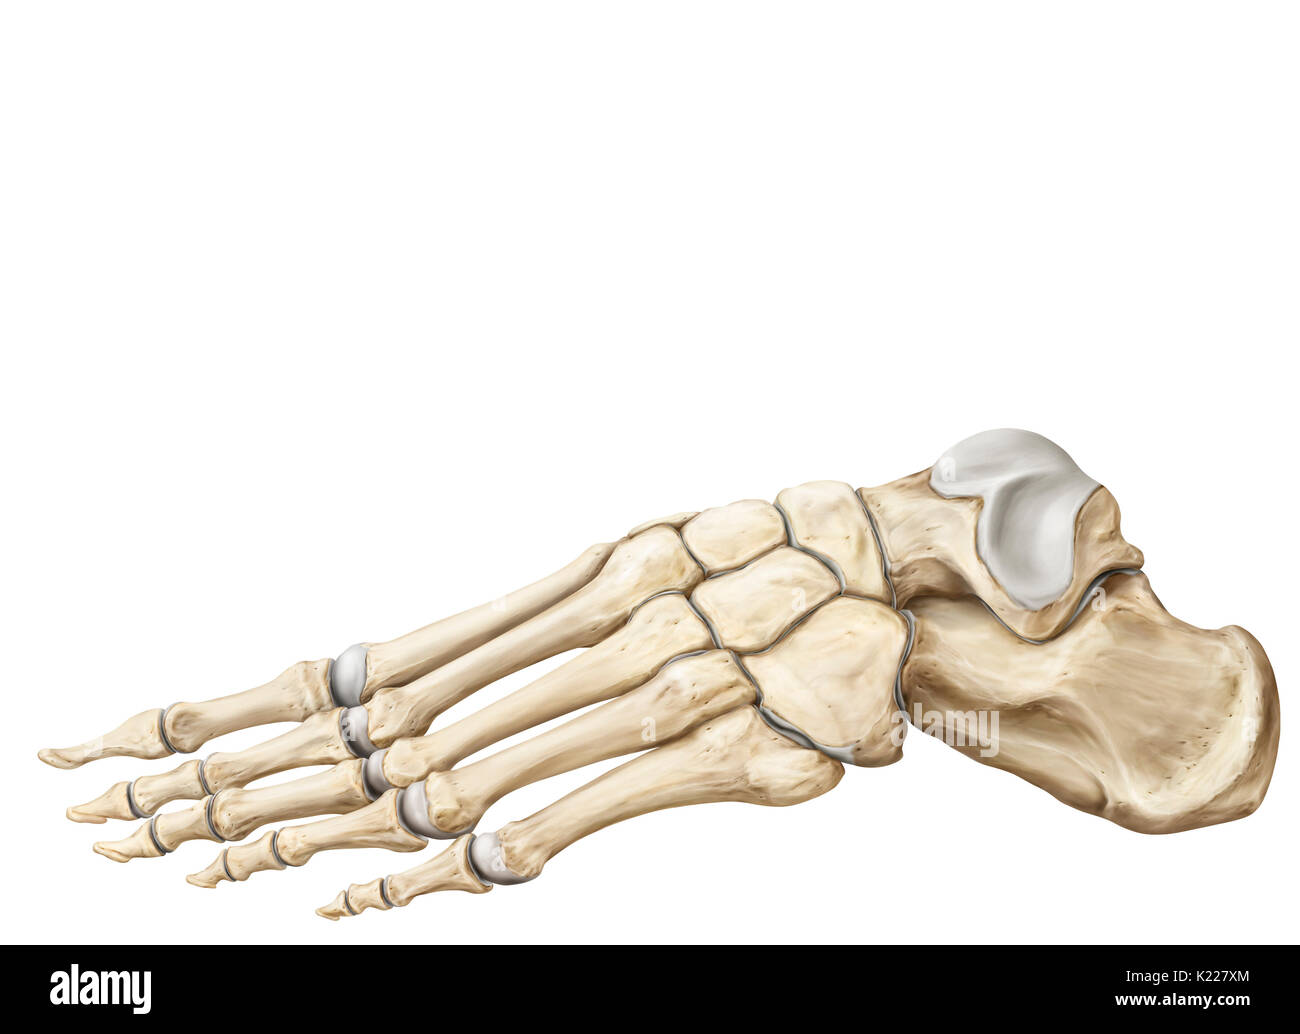 Bones Lower Body Stockfotos & Bones Lower Body Bilder - Alamy